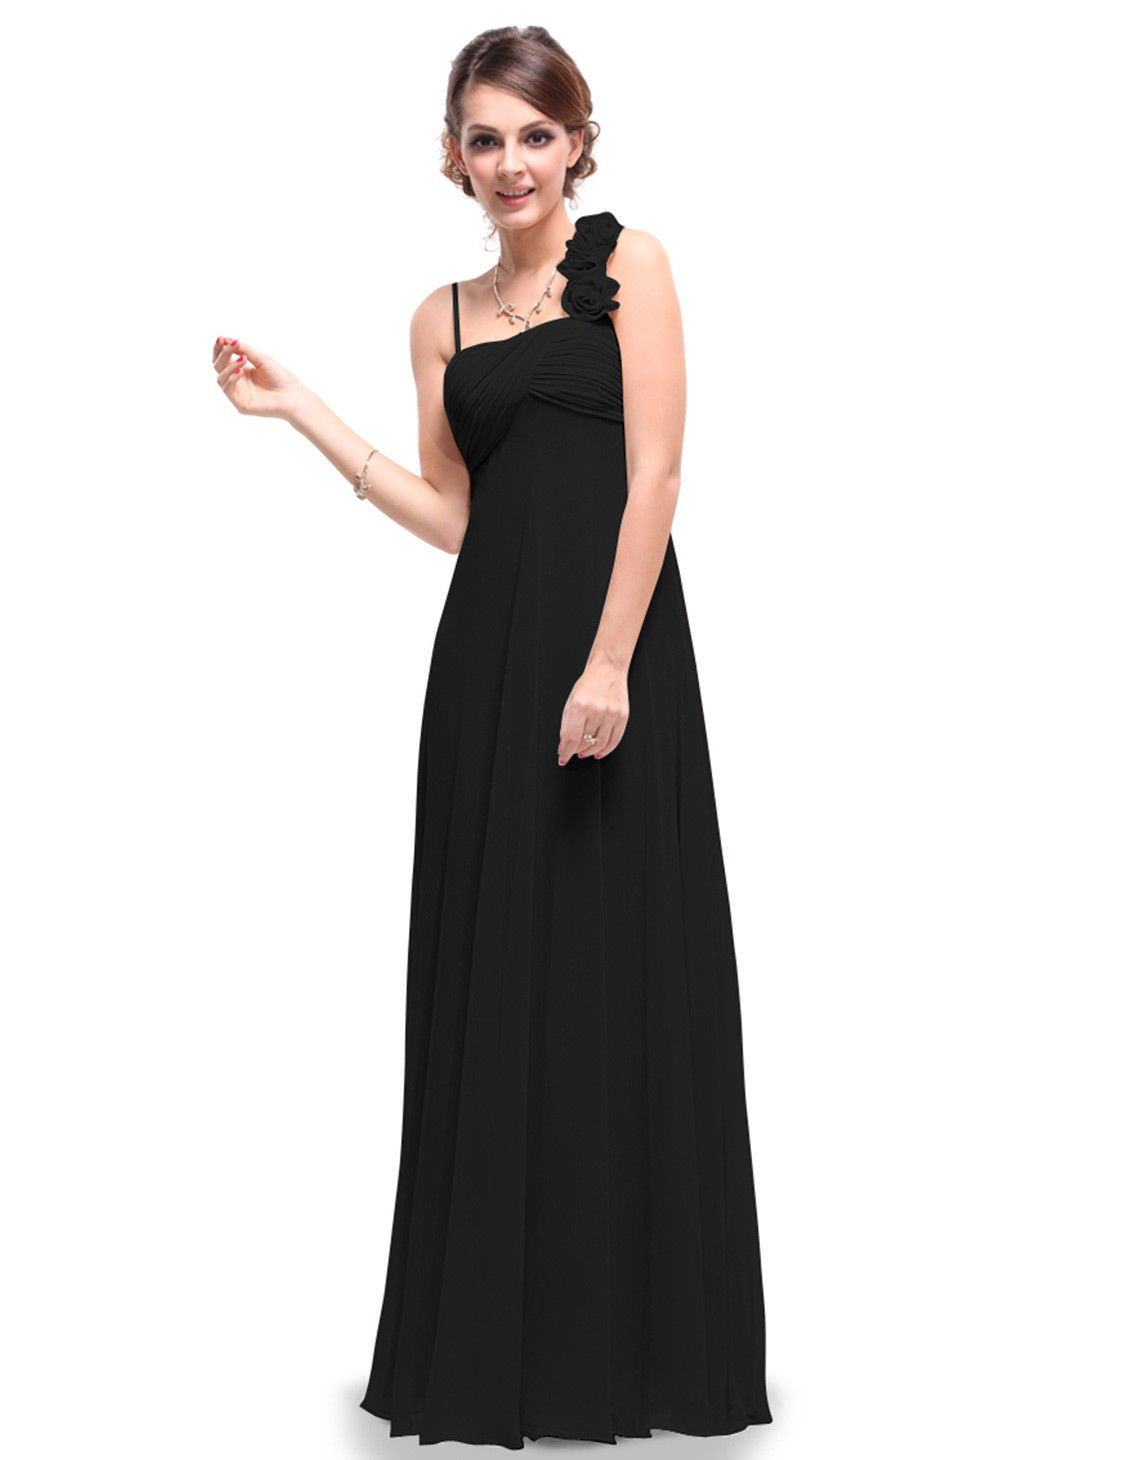 Cool great women evening formal one shoulder party prom plus dress